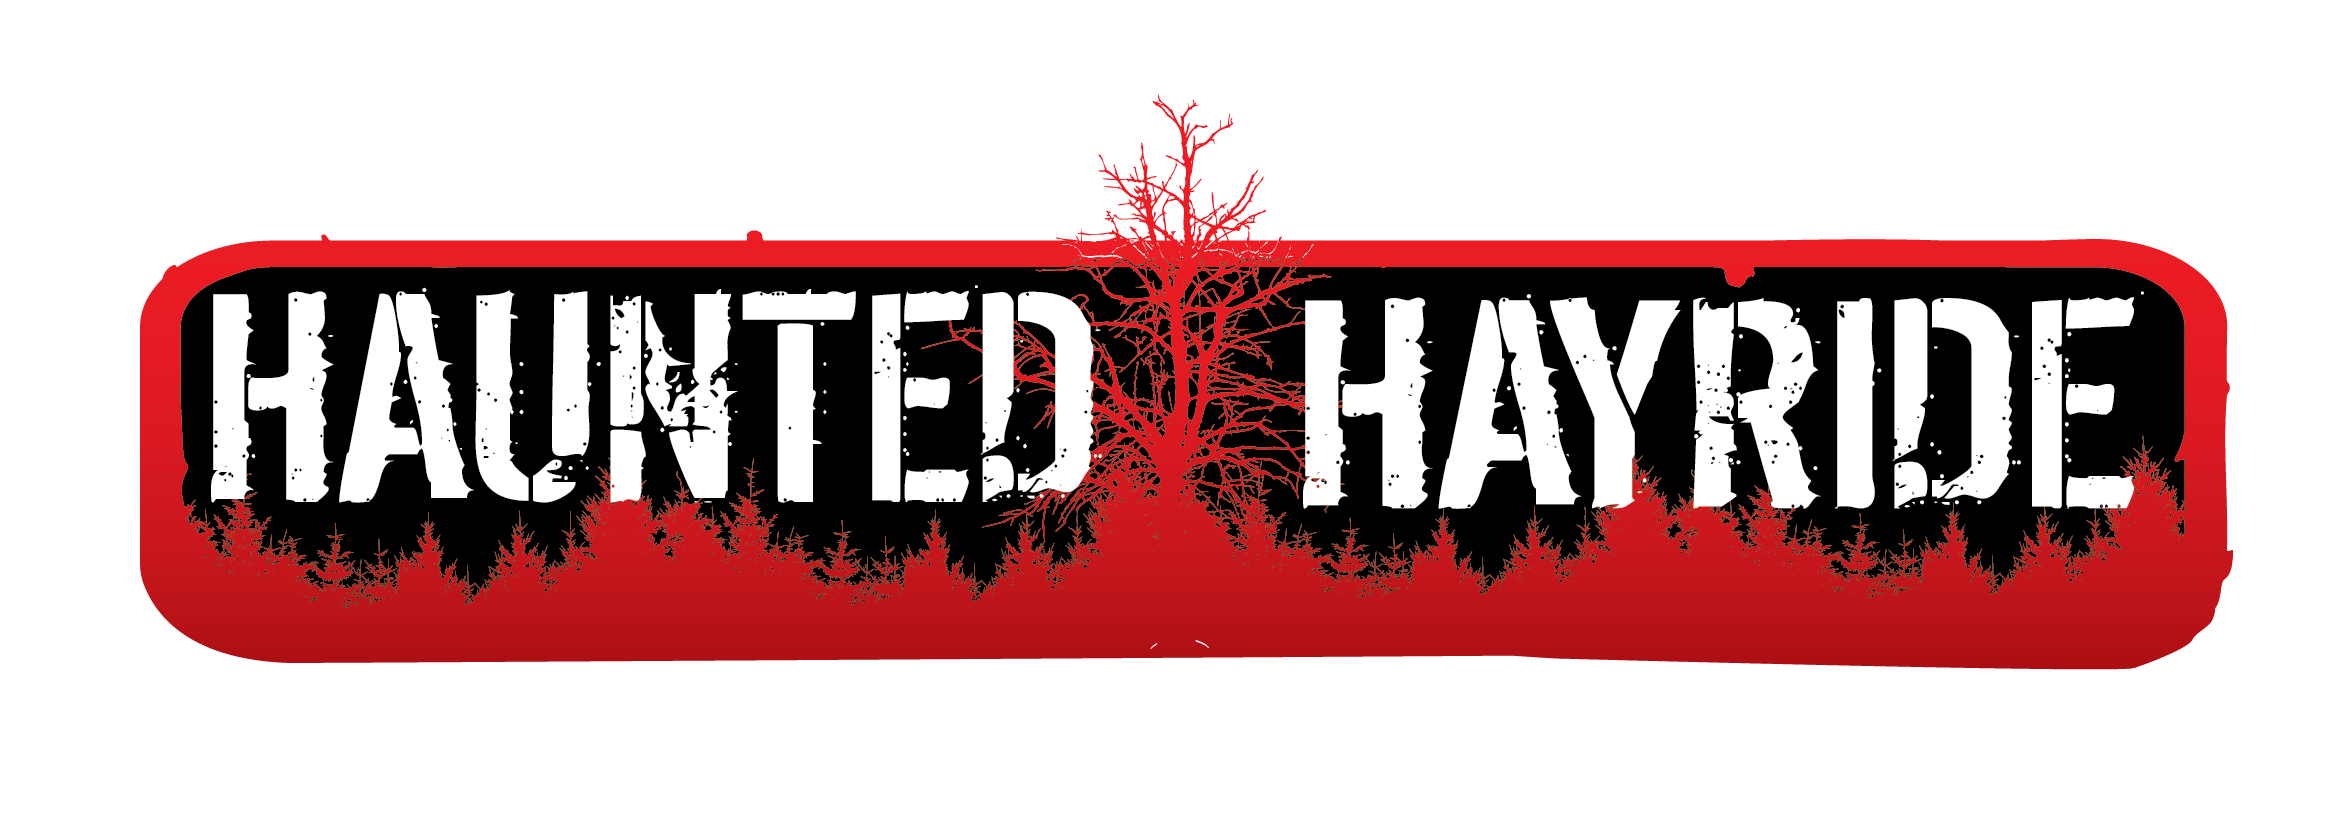 Website Hayride Logo